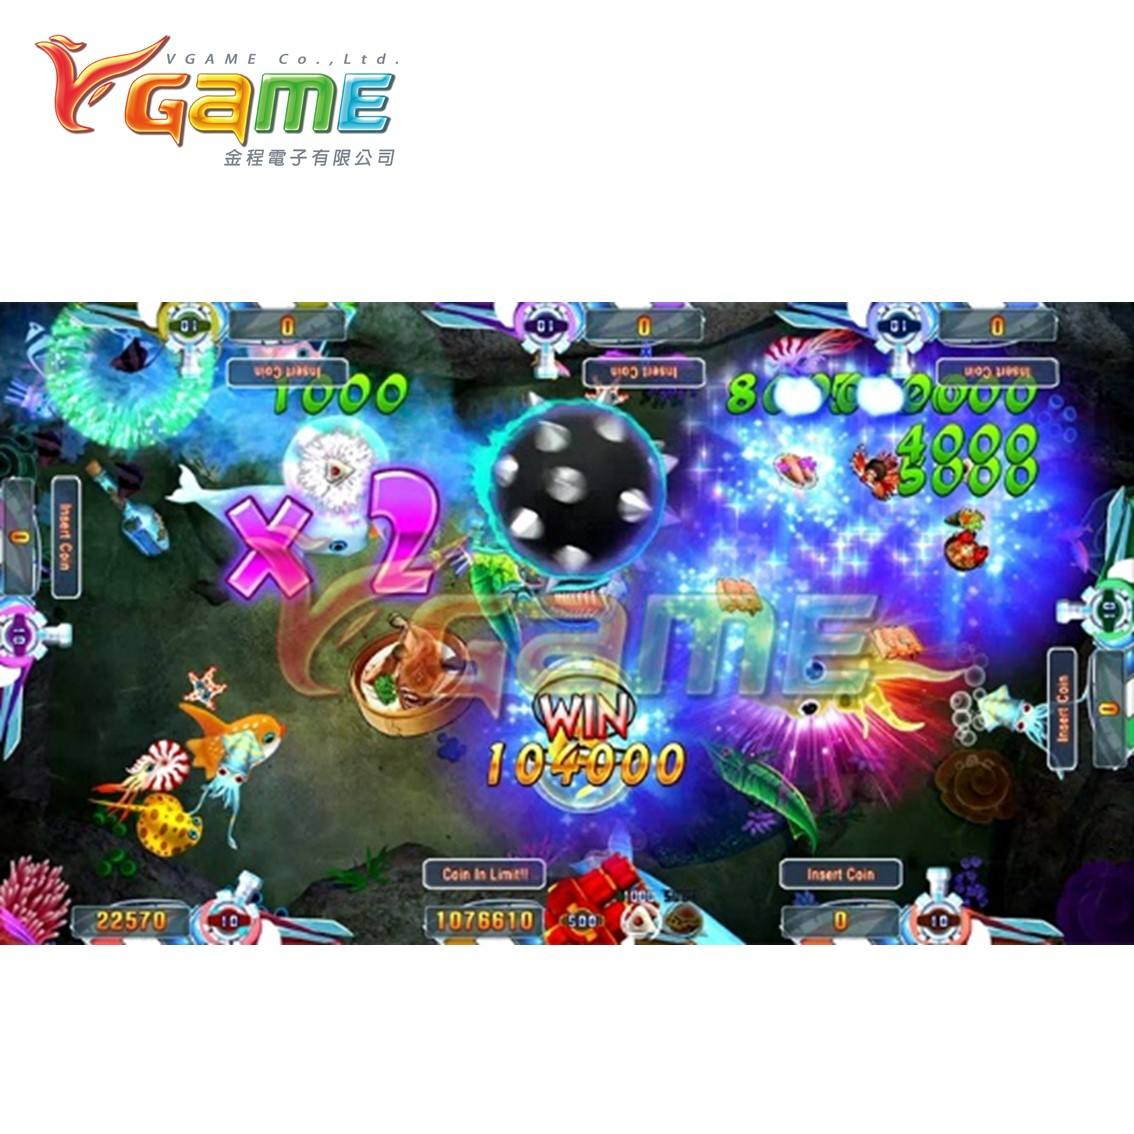 VGAME Hot Item Arcade Machine for Amusement Park